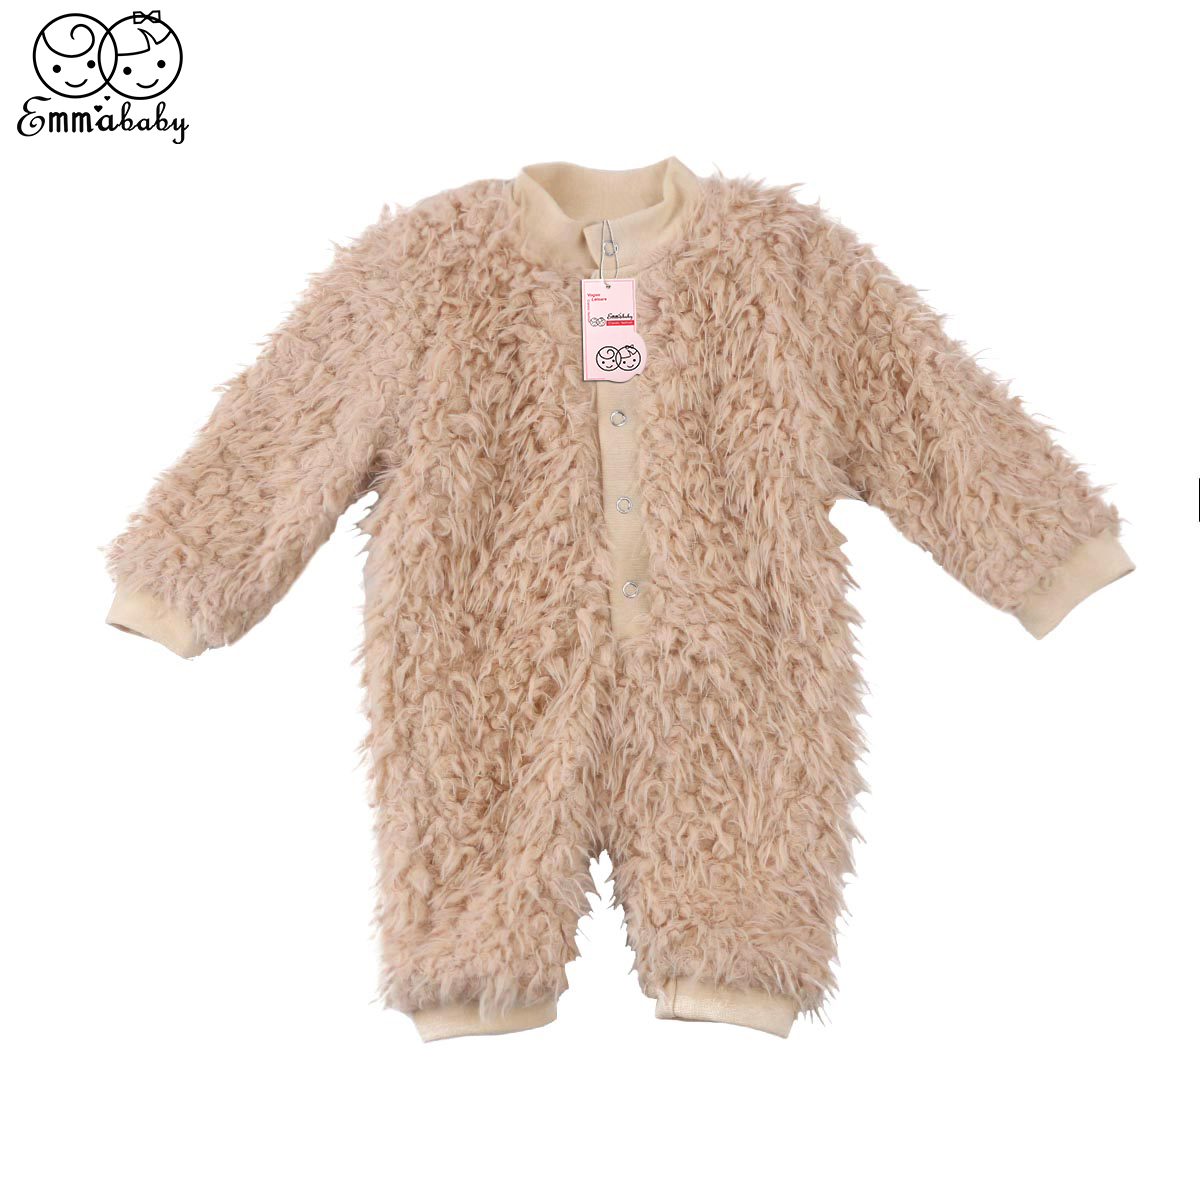 2018 new arrival winter warm fleece Rompers Newborn Baby Boy Girl Clothes long sleeve thicken Romper Jumpsuit One Pieces Outfits 3pcs set newborn infant baby boy girl clothes 2017 summer short sleeve leopard floral romper bodysuit headband shoes outfits